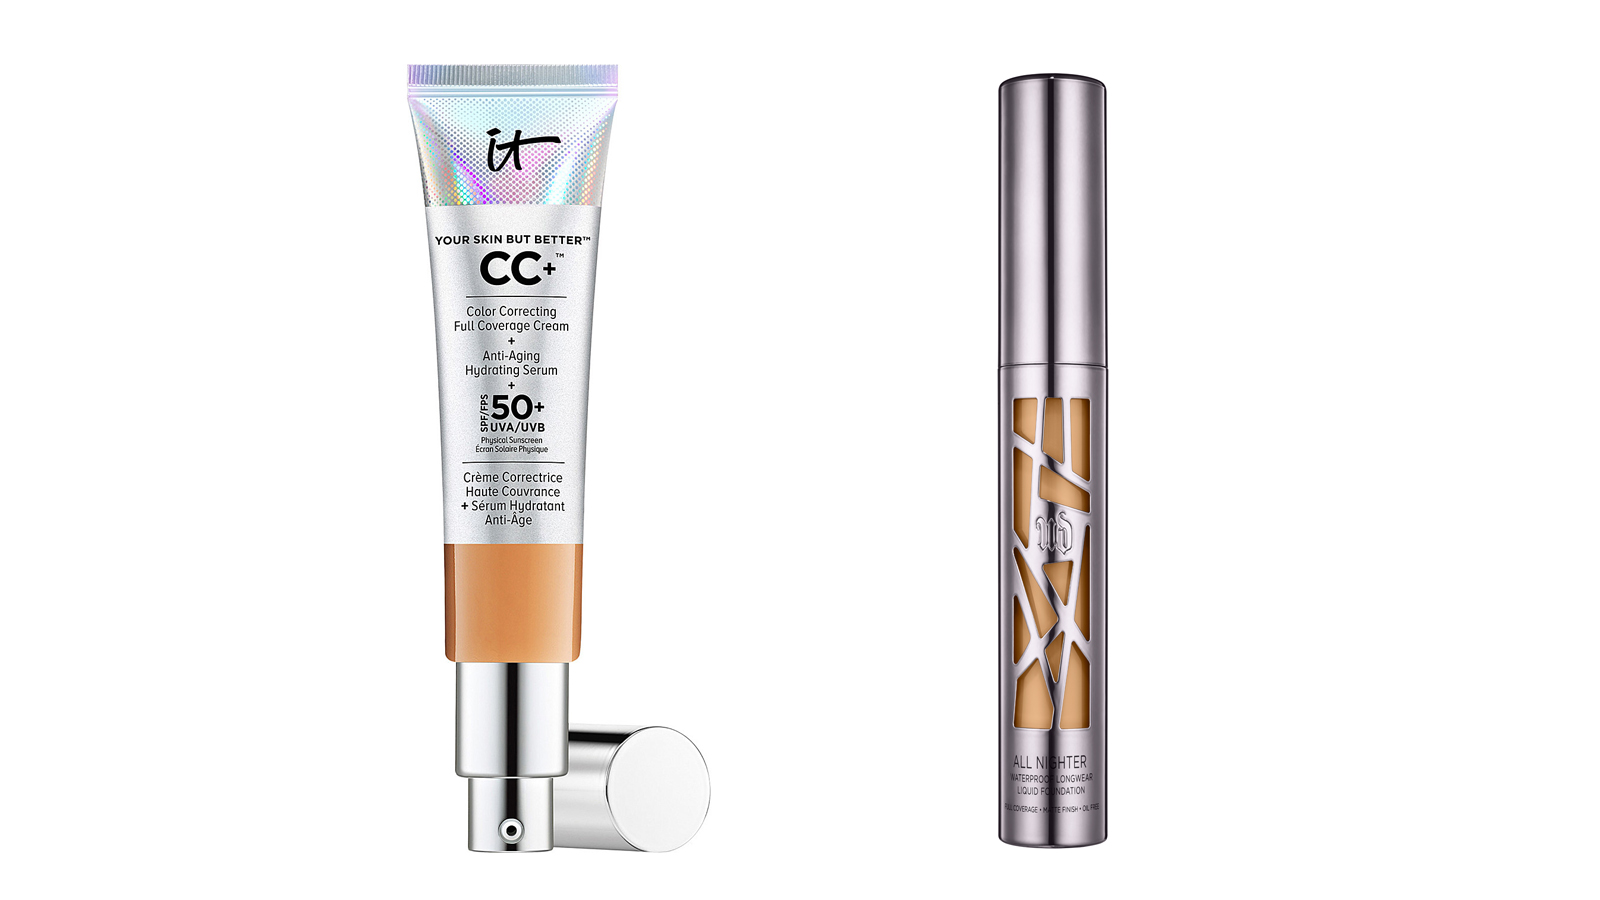 IT Cosmetics Your Skin But Better CC+ SPF 50+ Cream and Urban Decay All Nighter Liquid Foundation